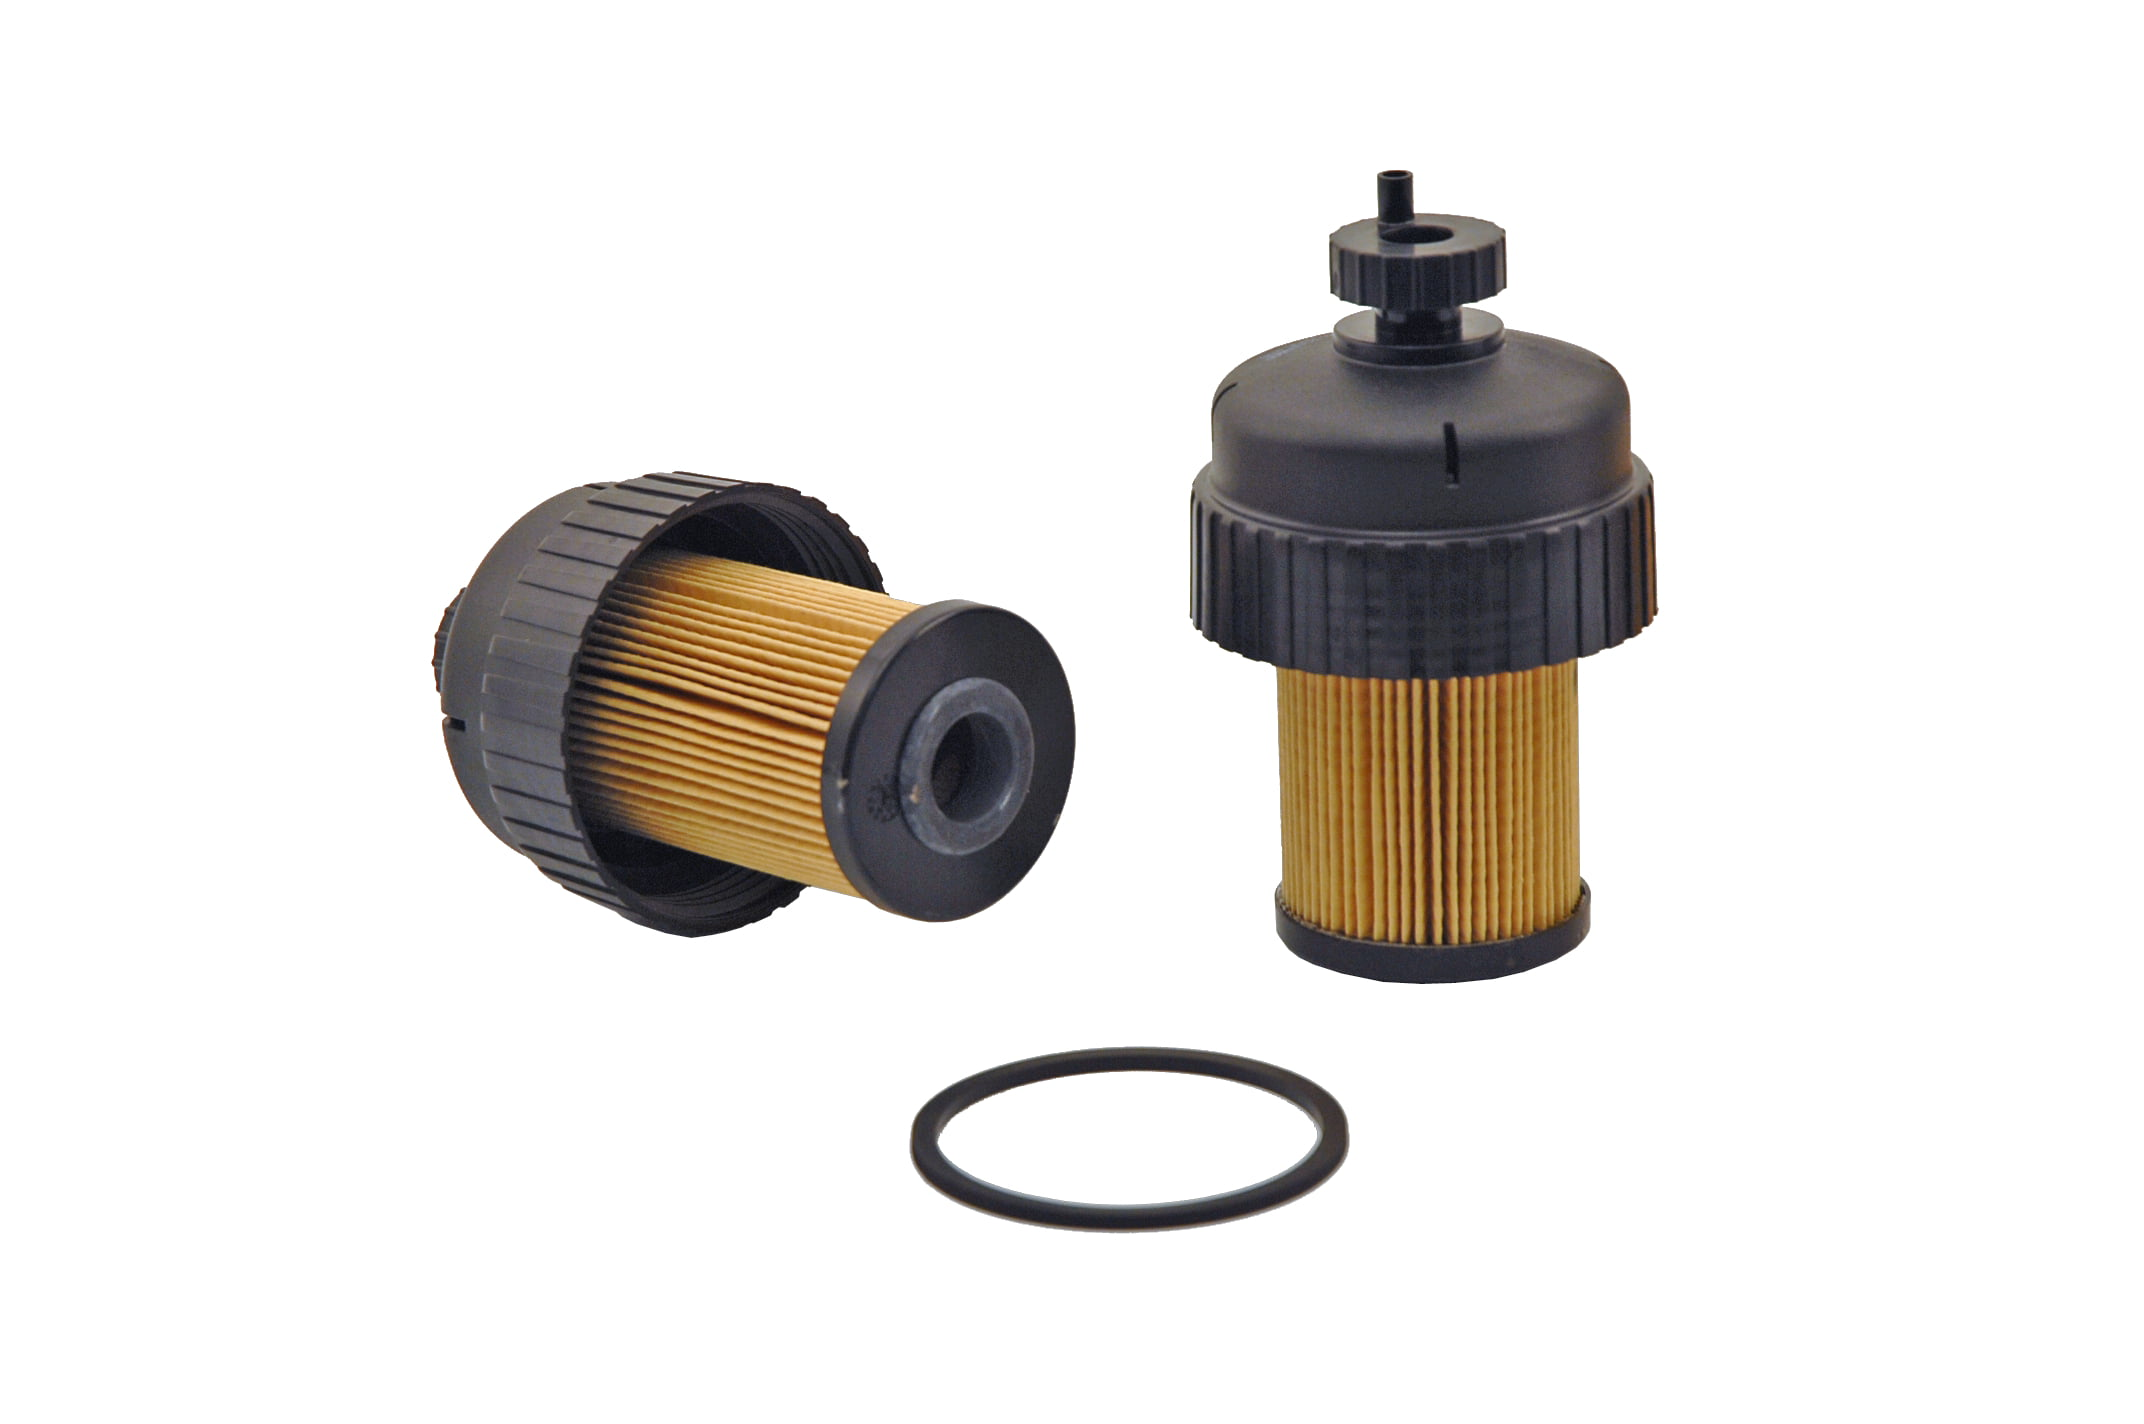 Wix Filters 33976 Fuel Filter Cartridge Style